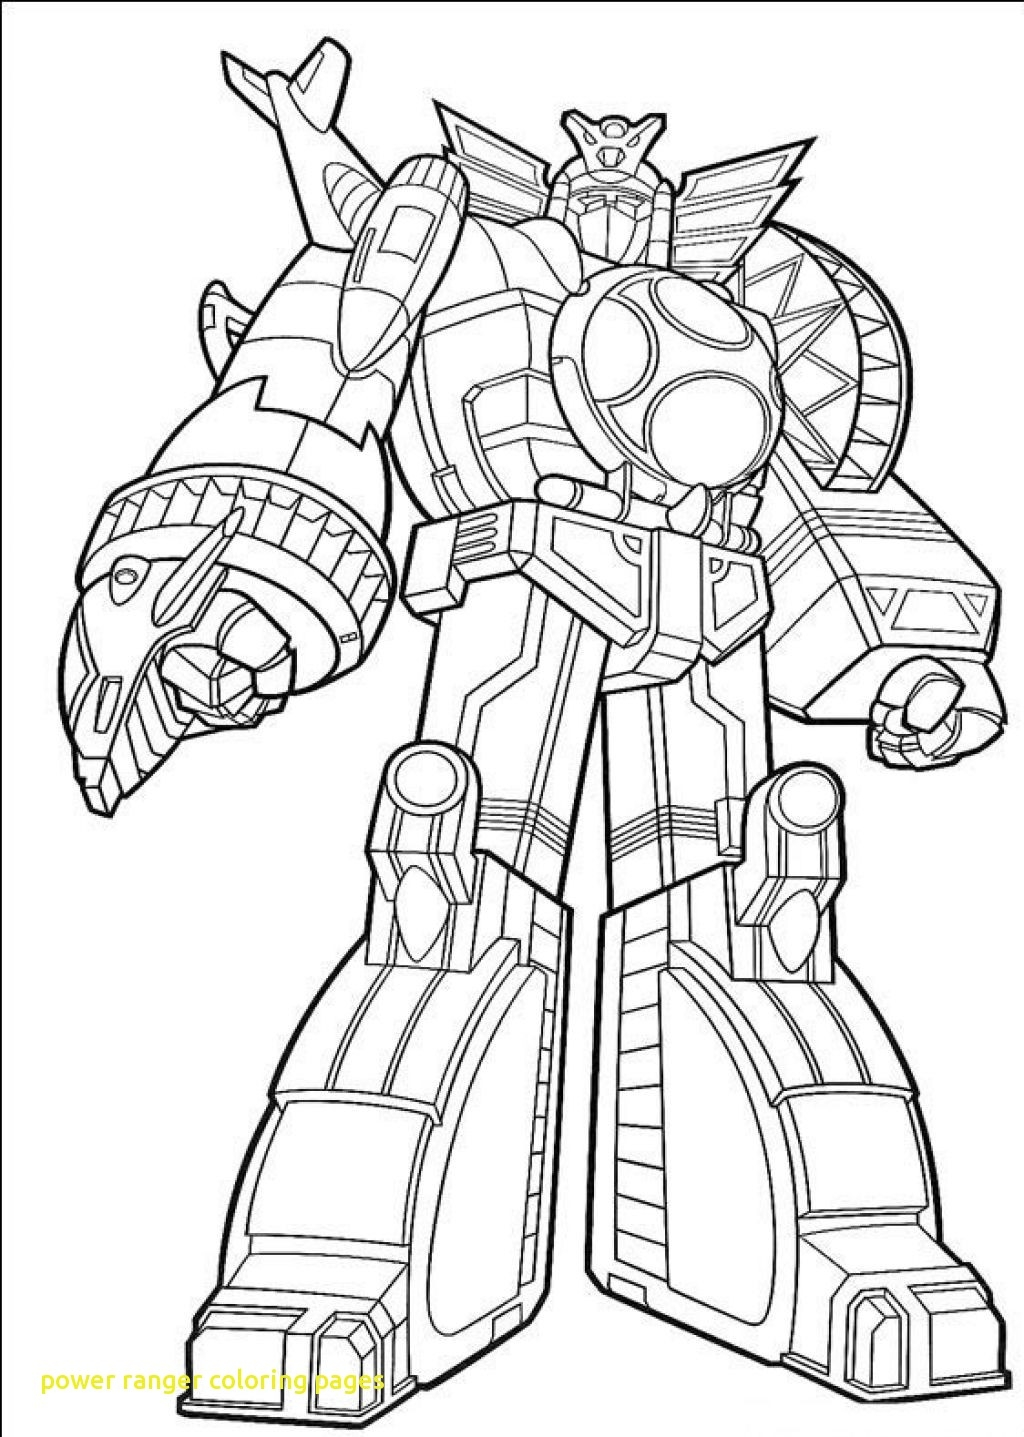 Dino Charge Coloring Pages At Getcolorings